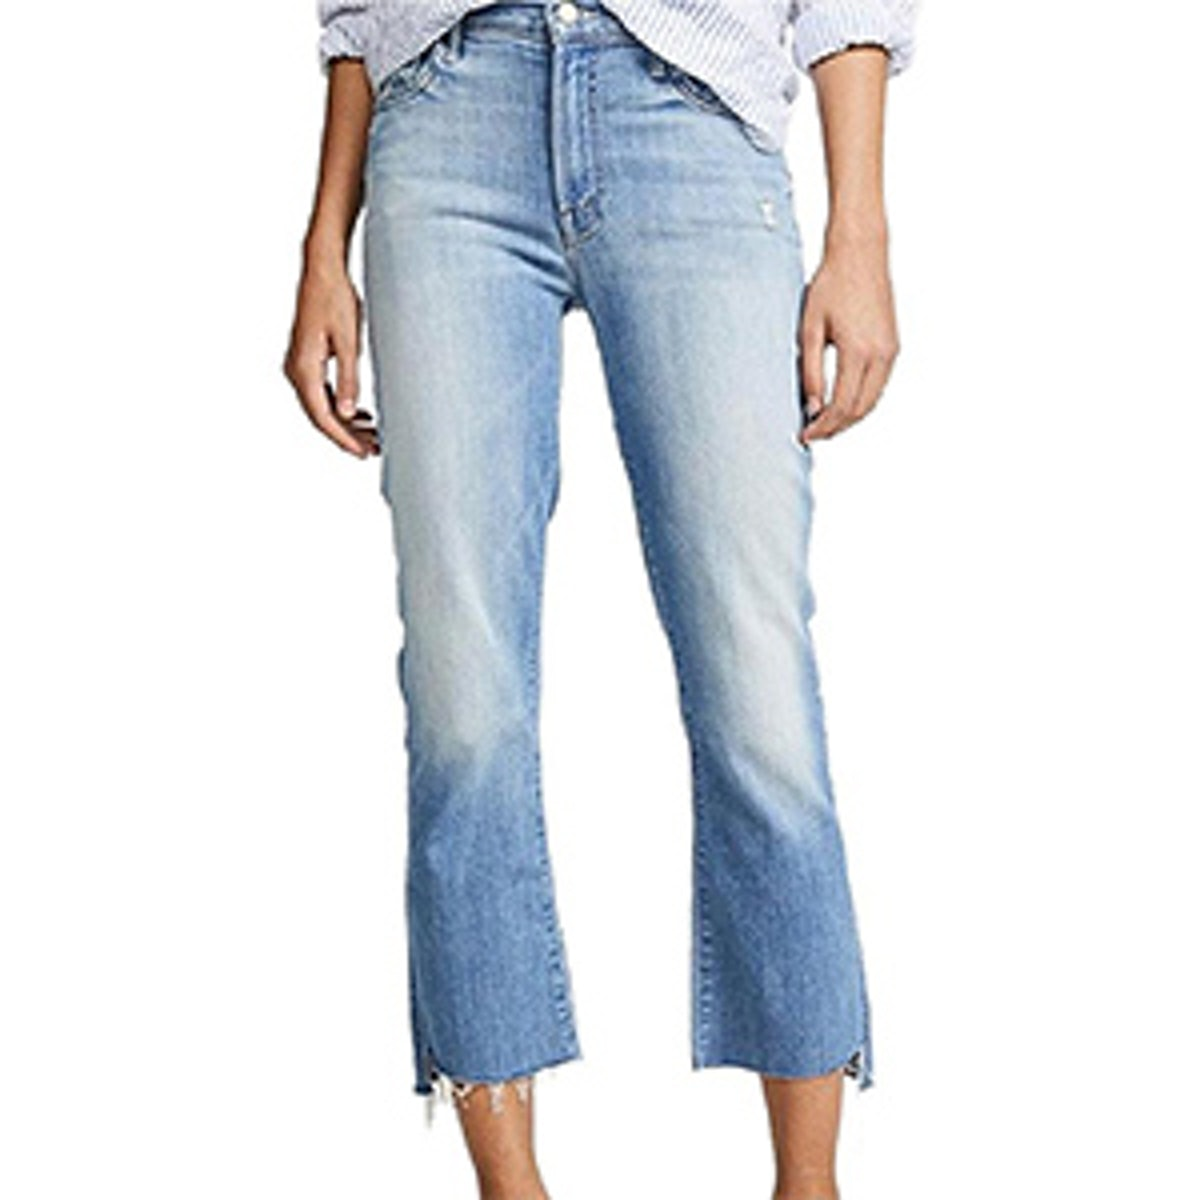 Medium Wash Two Step Fray Cropped Jeans